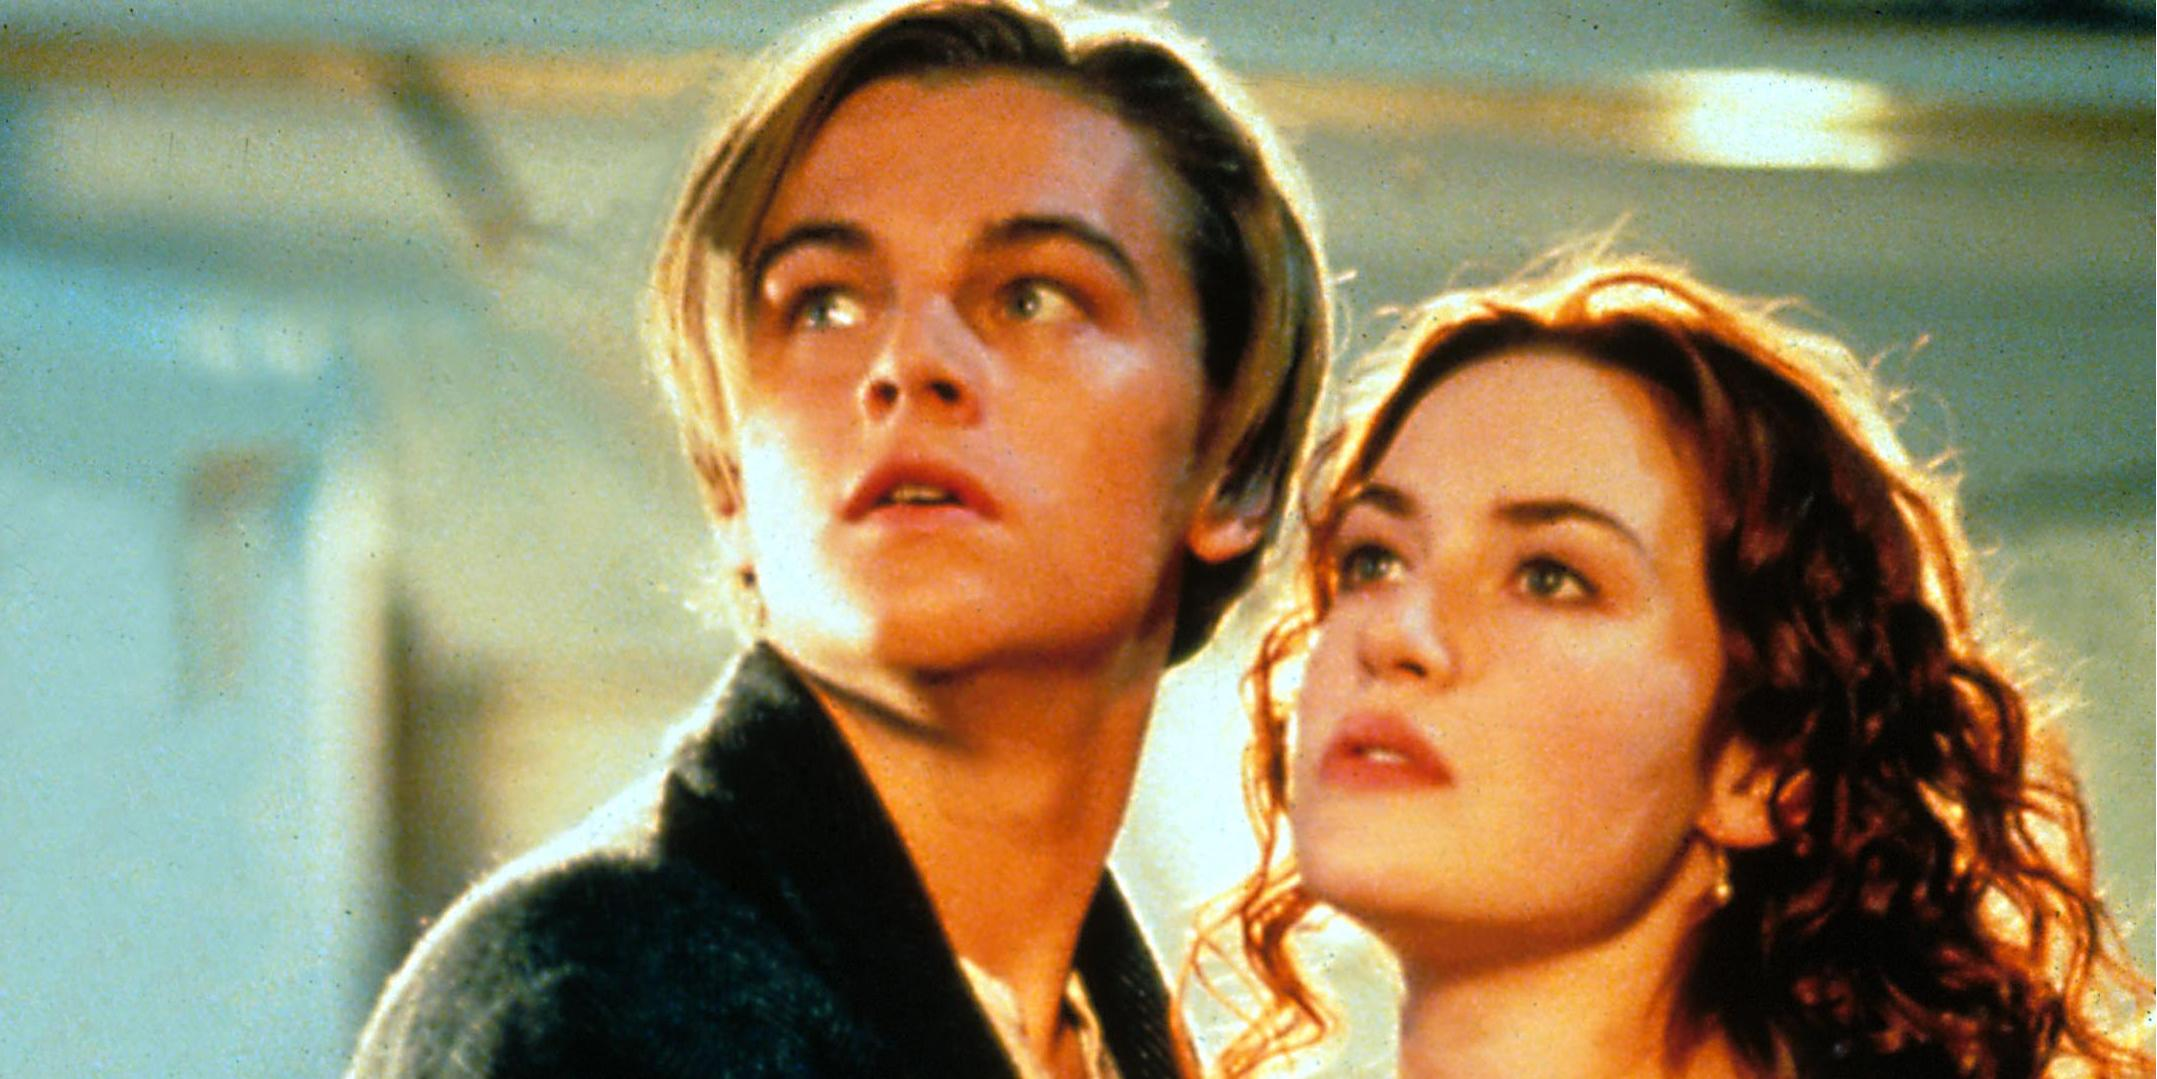 Top 15 Favorite On-Screen Couples